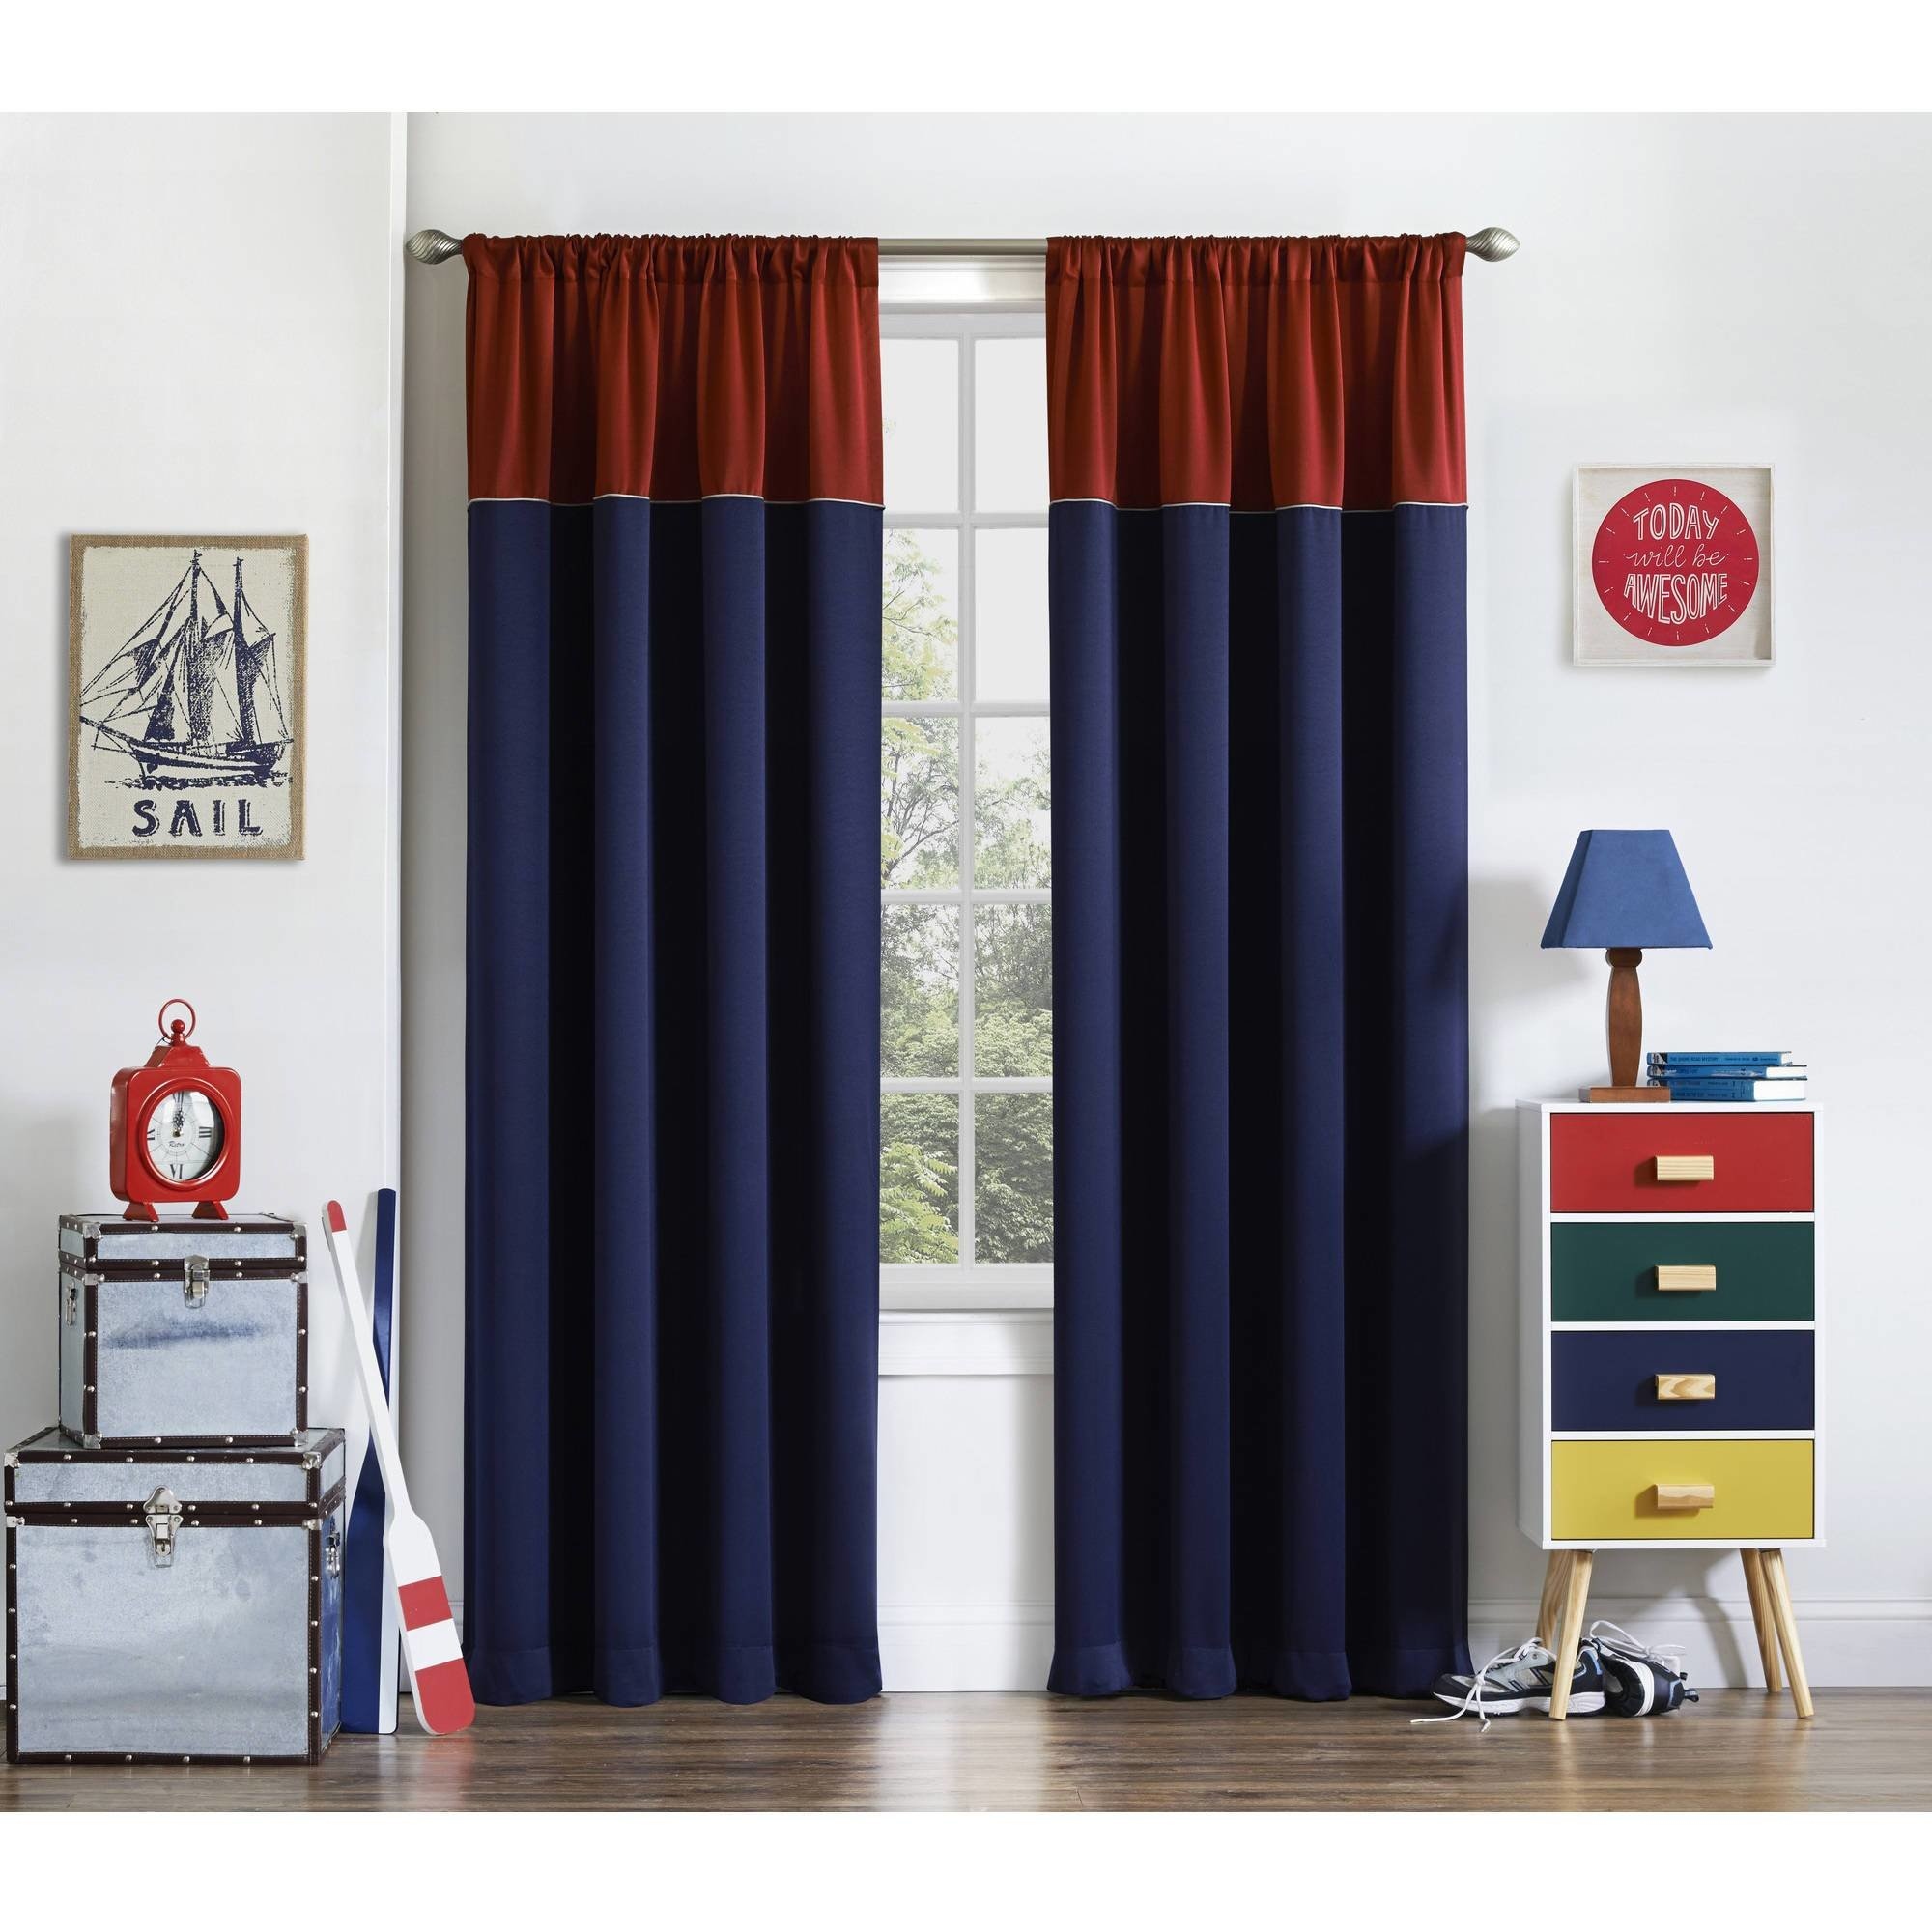 Best Eclipse Luna Room Darkening Kids Bedroom Curtain Walmart Com With Pictures